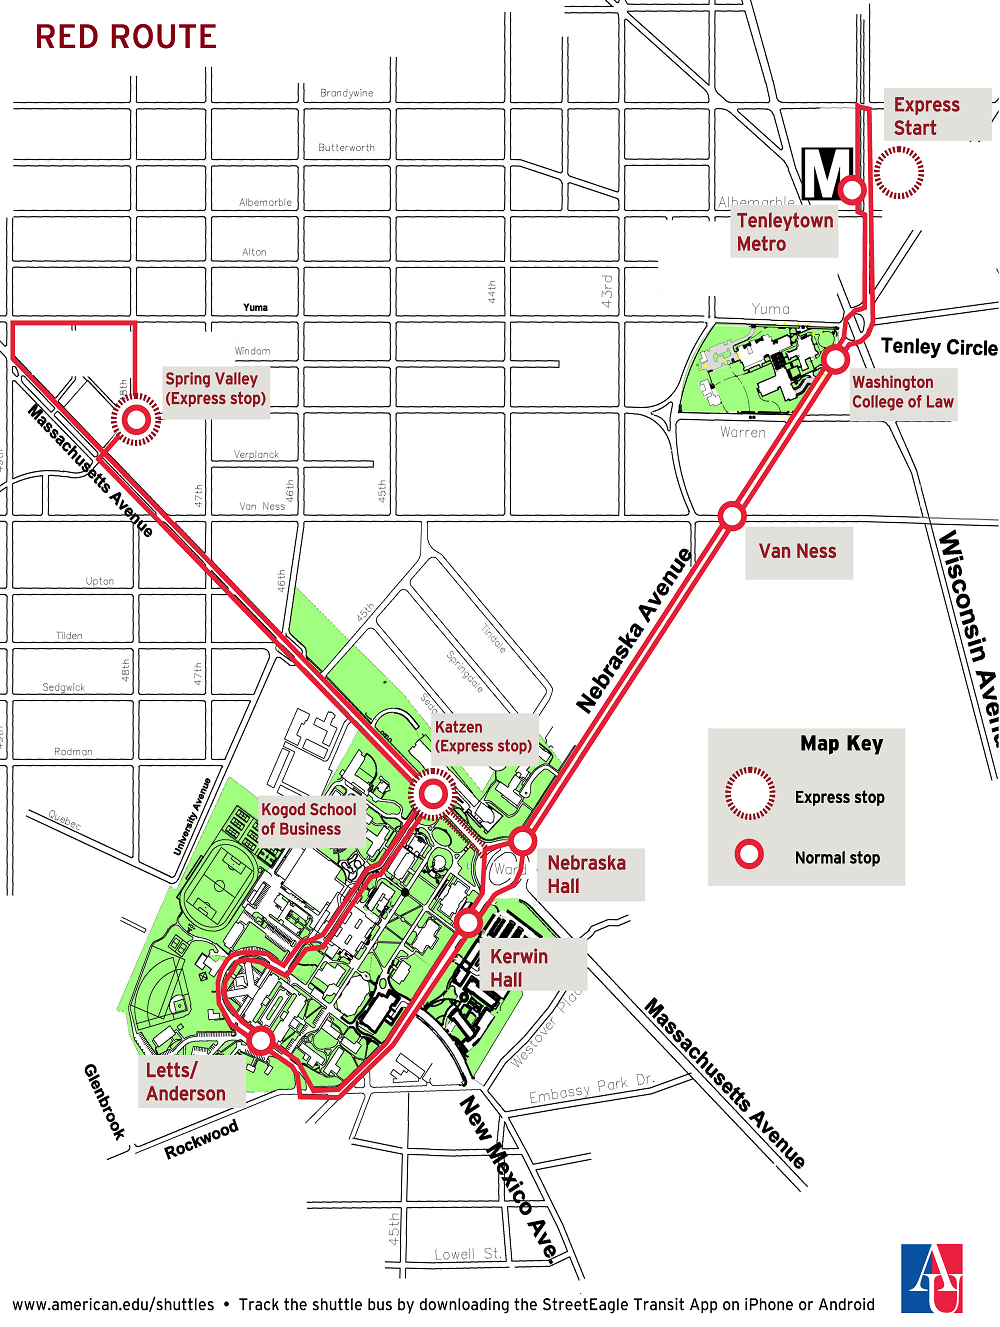 Map Of Red Route Shuttle